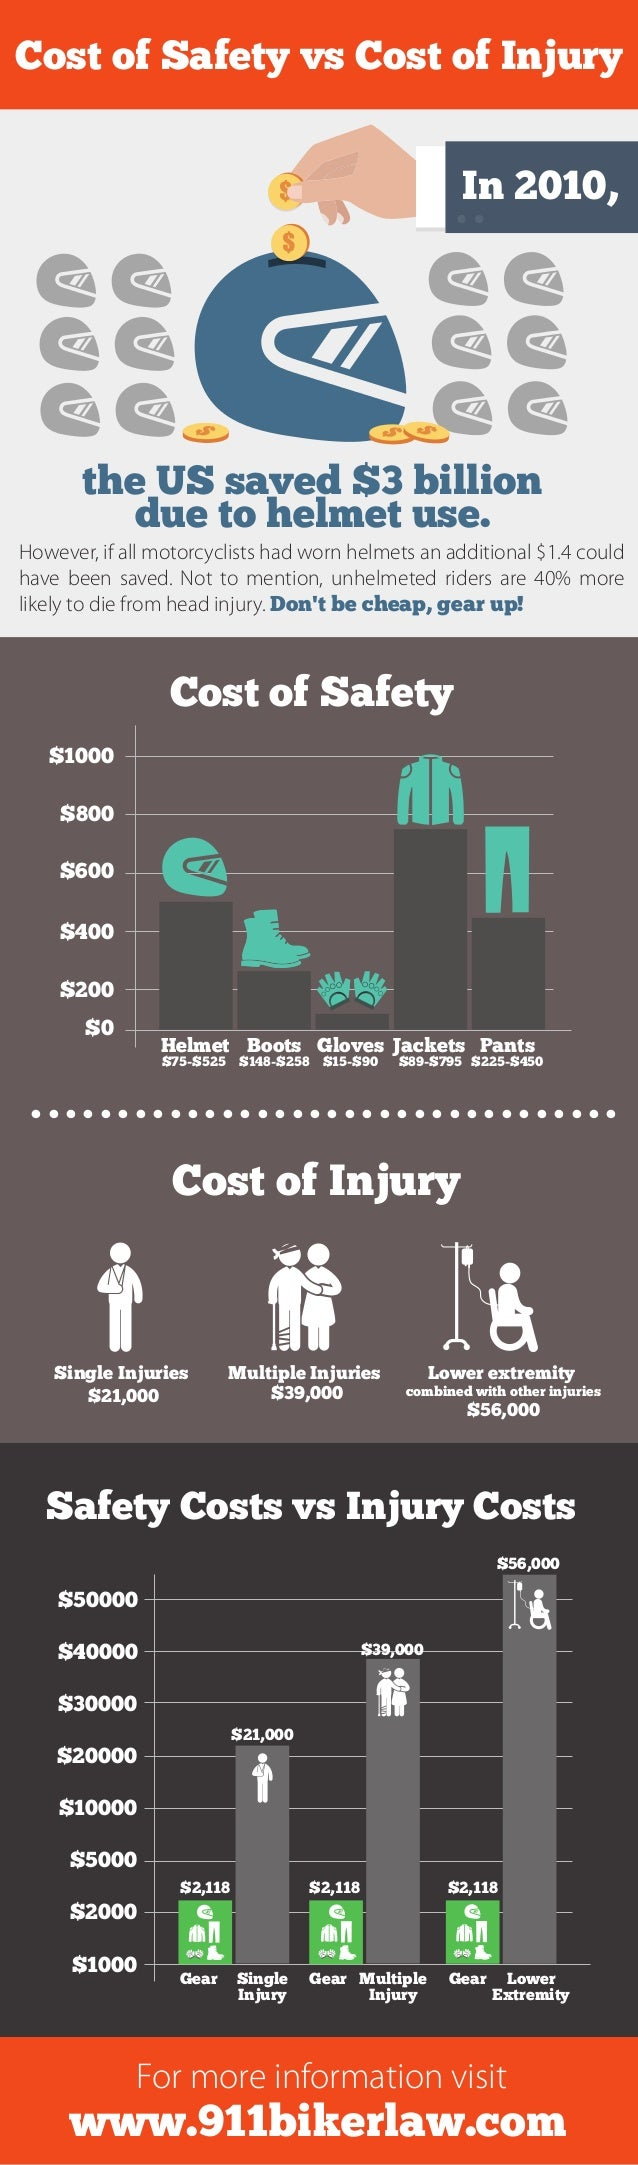 www.911bikerlaw.com For more information visit However, if all motorcyclists had worn helmets an additional $1.4 could hav...